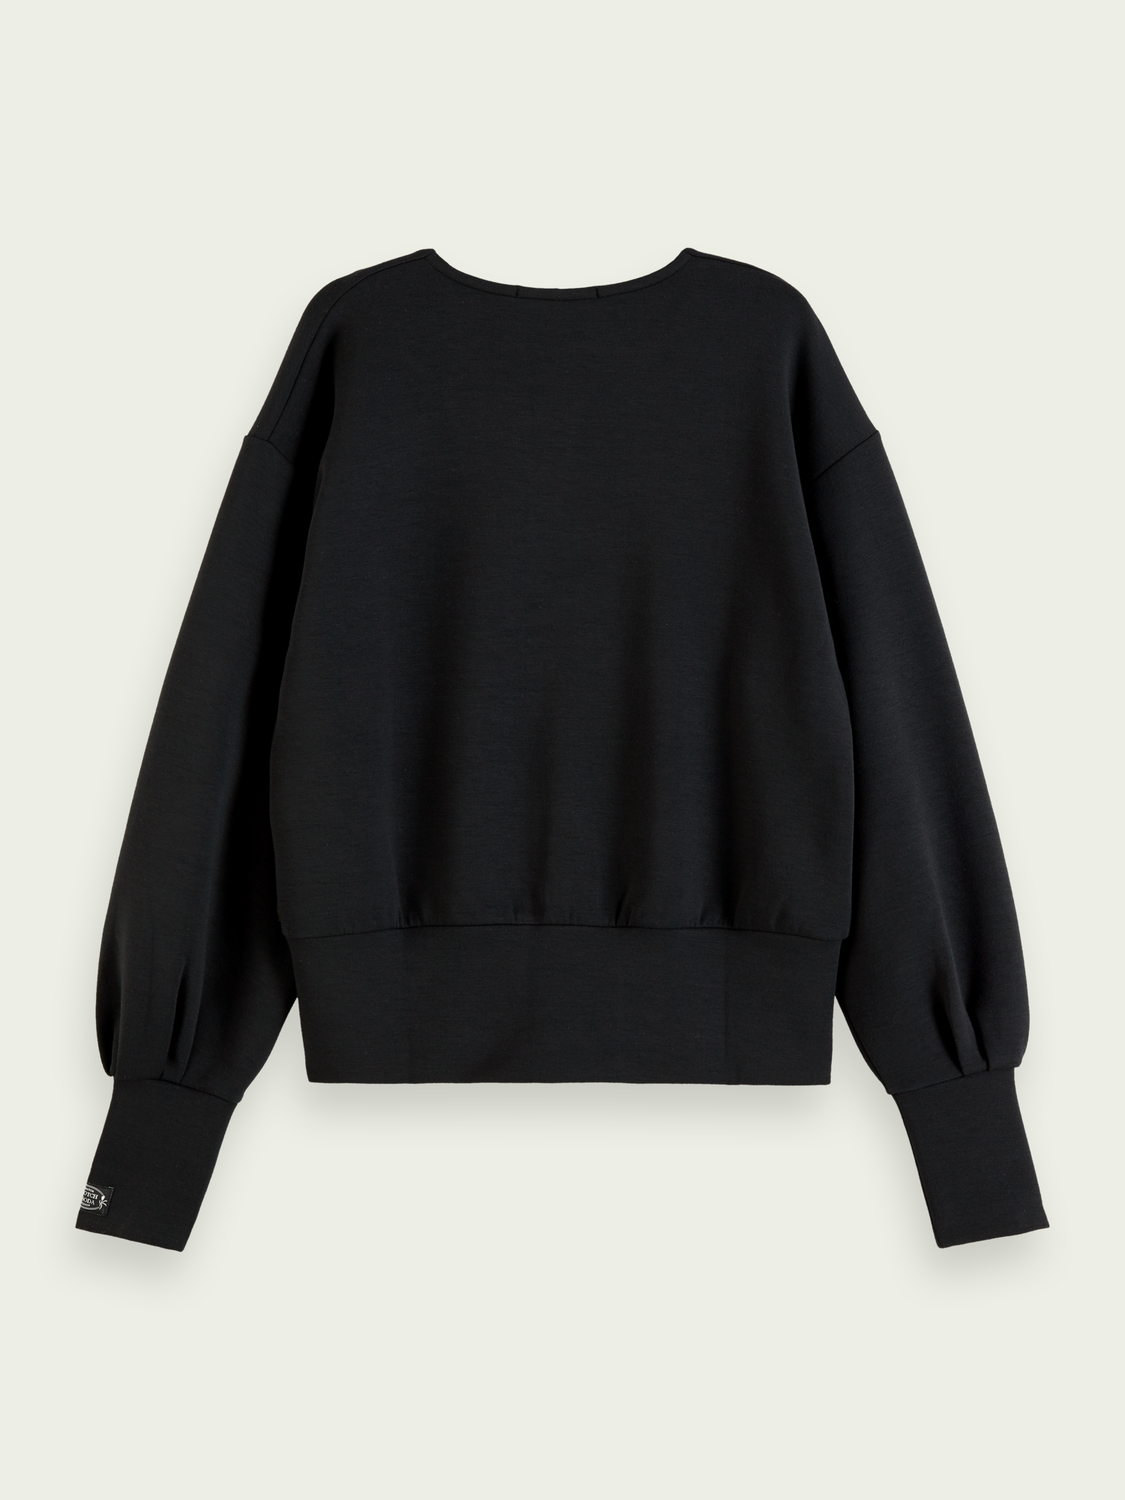 Femme Sweat-shirt doux à manches volumineuses